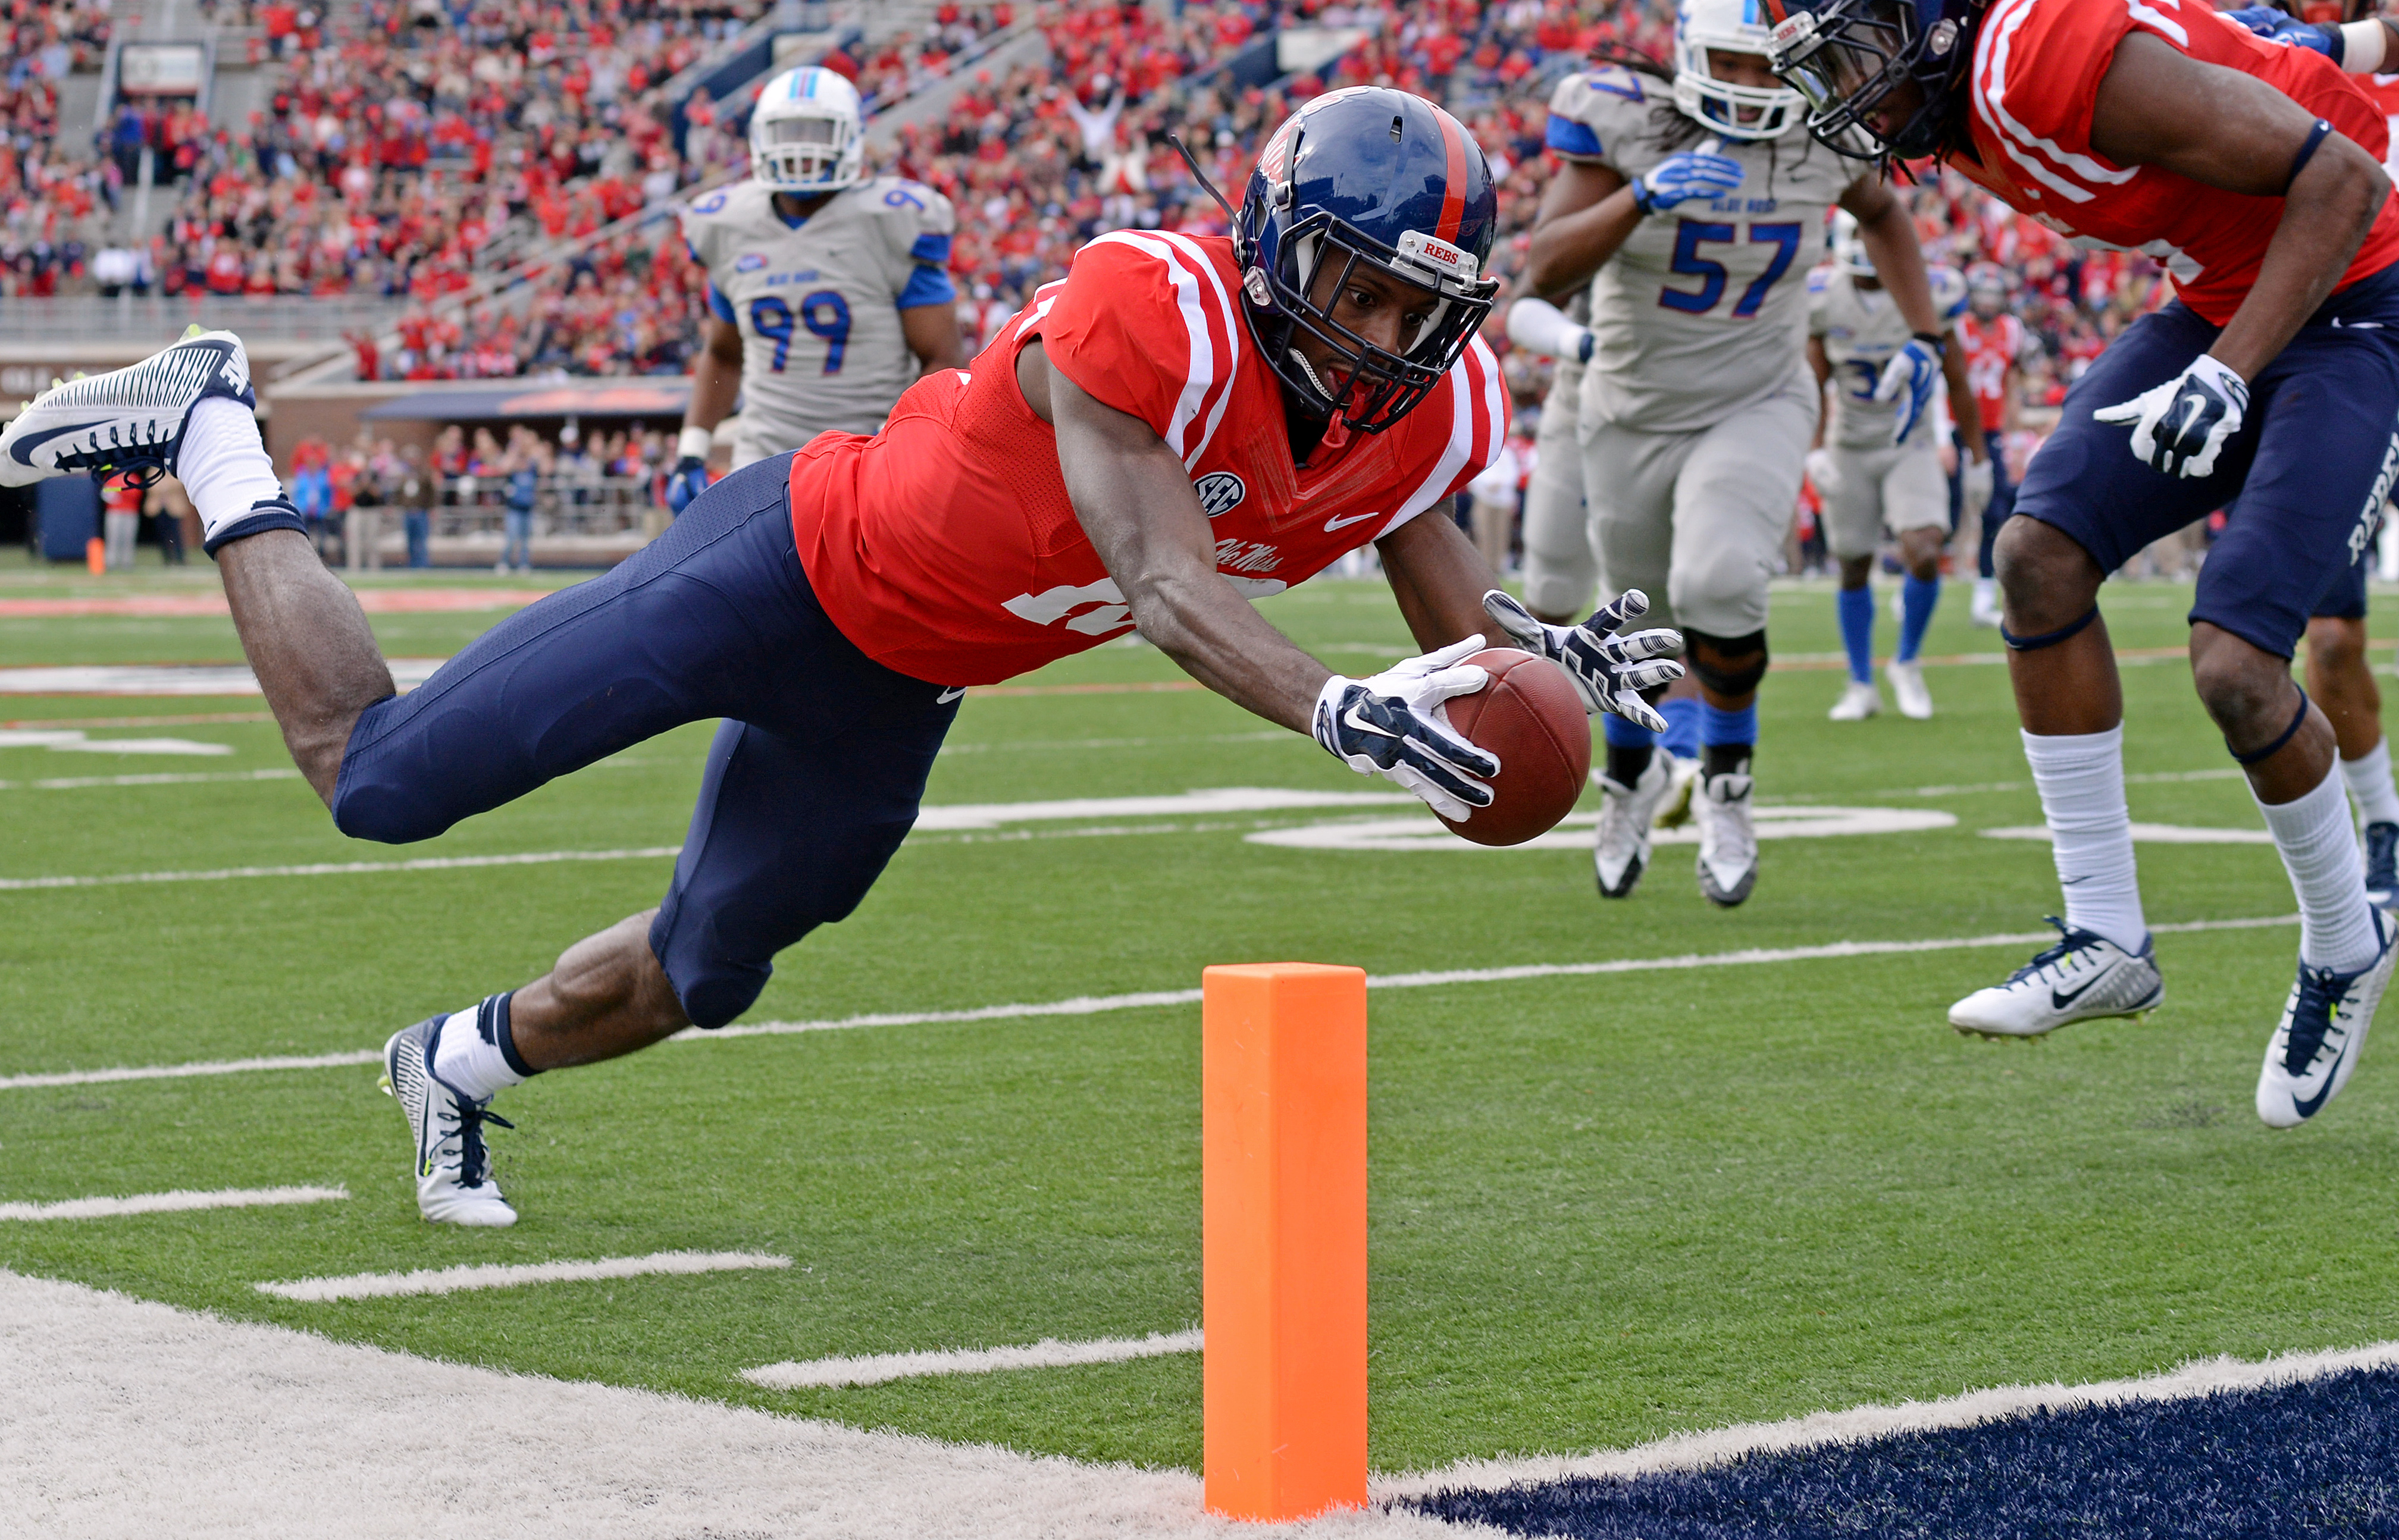 Mississippi wide receiver Vince Sanders (10) dives in to the end zone for a touchdown during the first half of an NCAA college football game against Presbyterian in Oxford, Miss., Saturday, Nov. 8, 2014. (AP Photo/Thomas Graning)